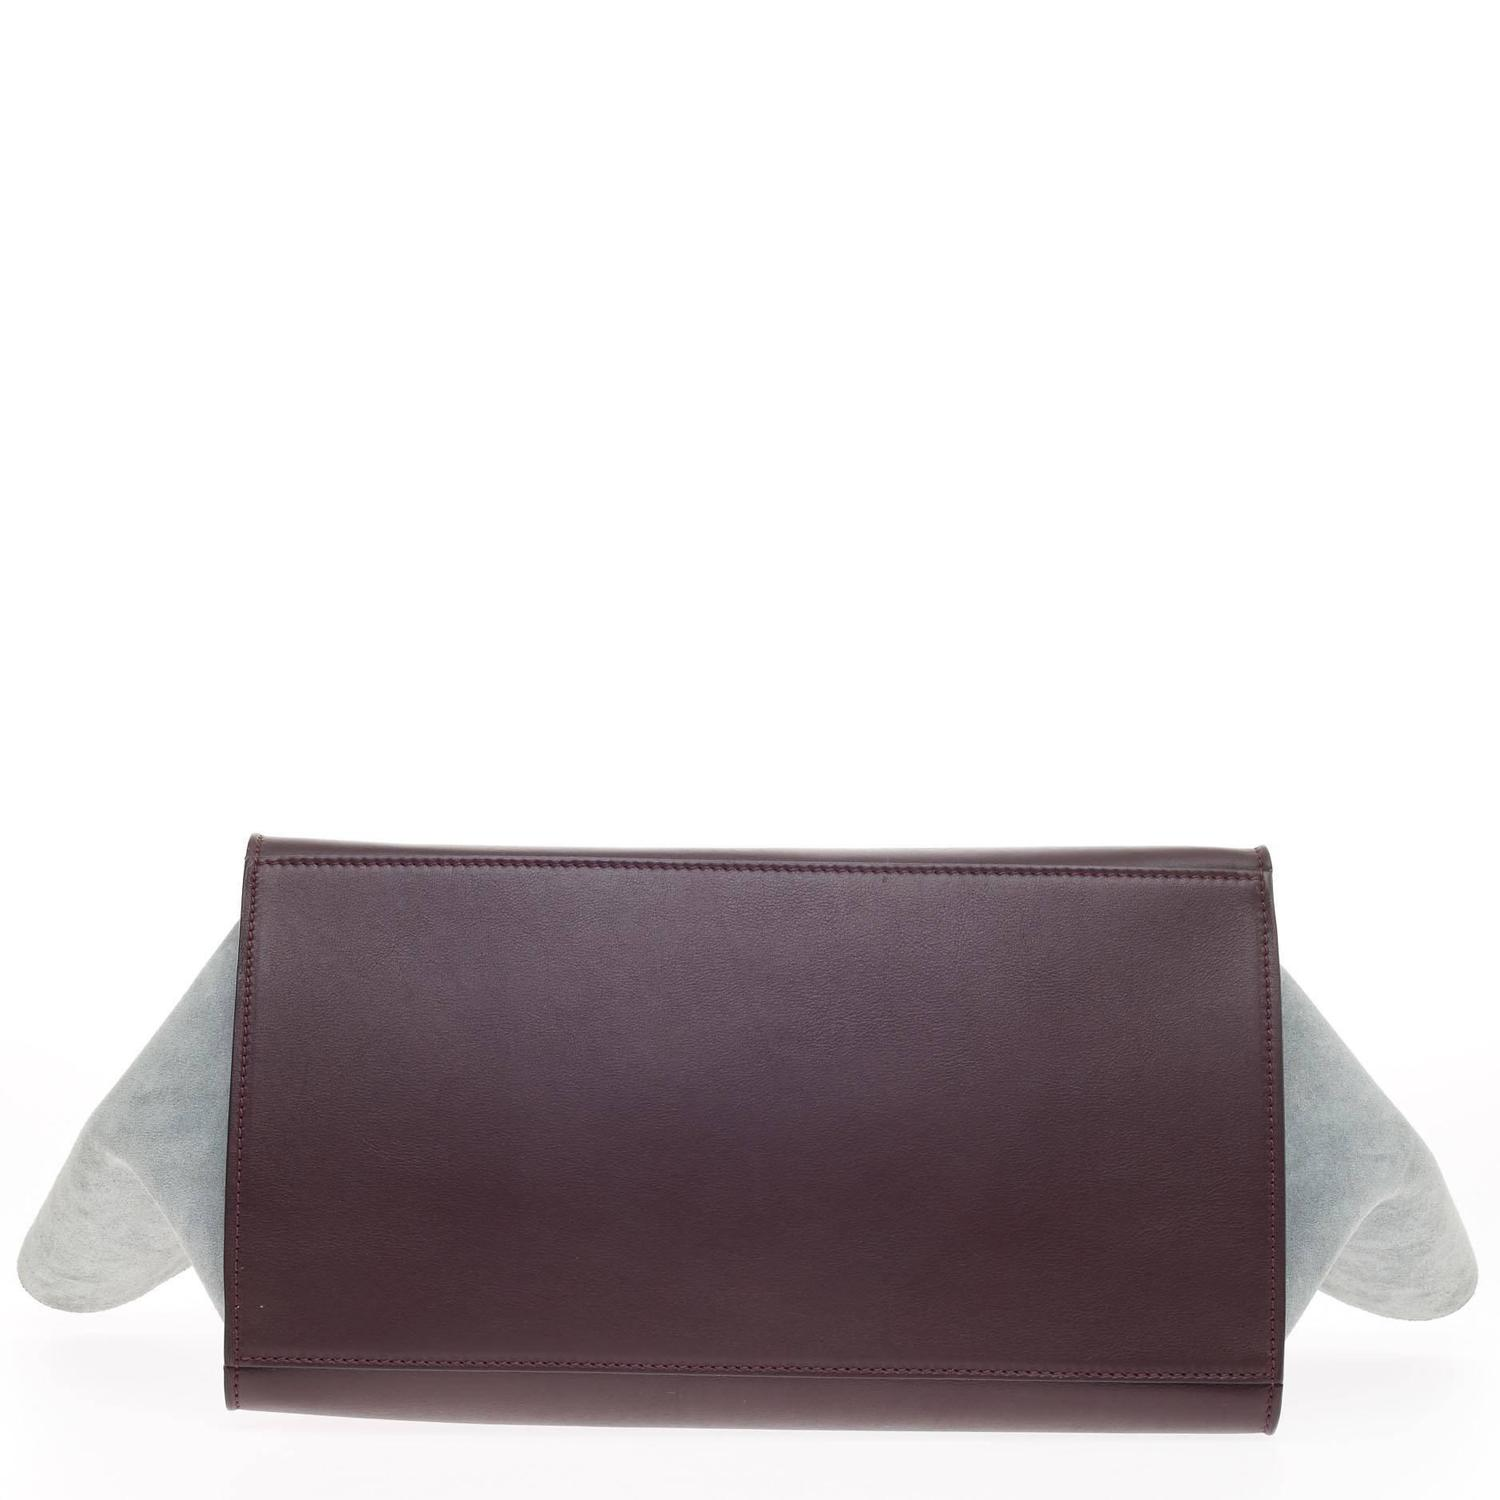 Celine Trapeze Tricolor Leather Medium For Sale at 1stdibs